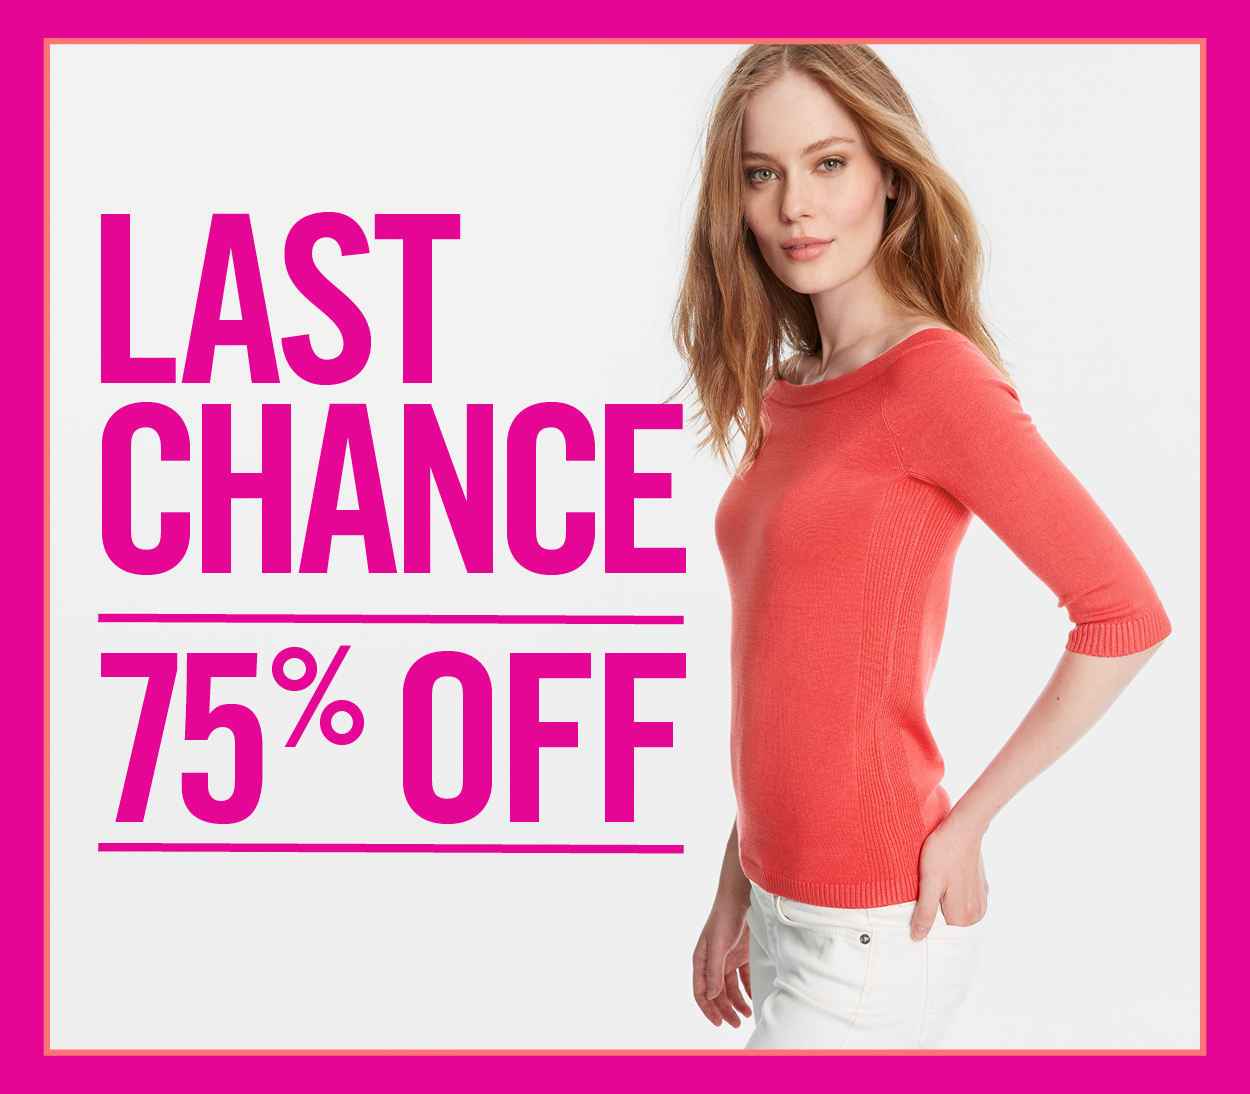 LAST CHANCE – 75% OFF SALE